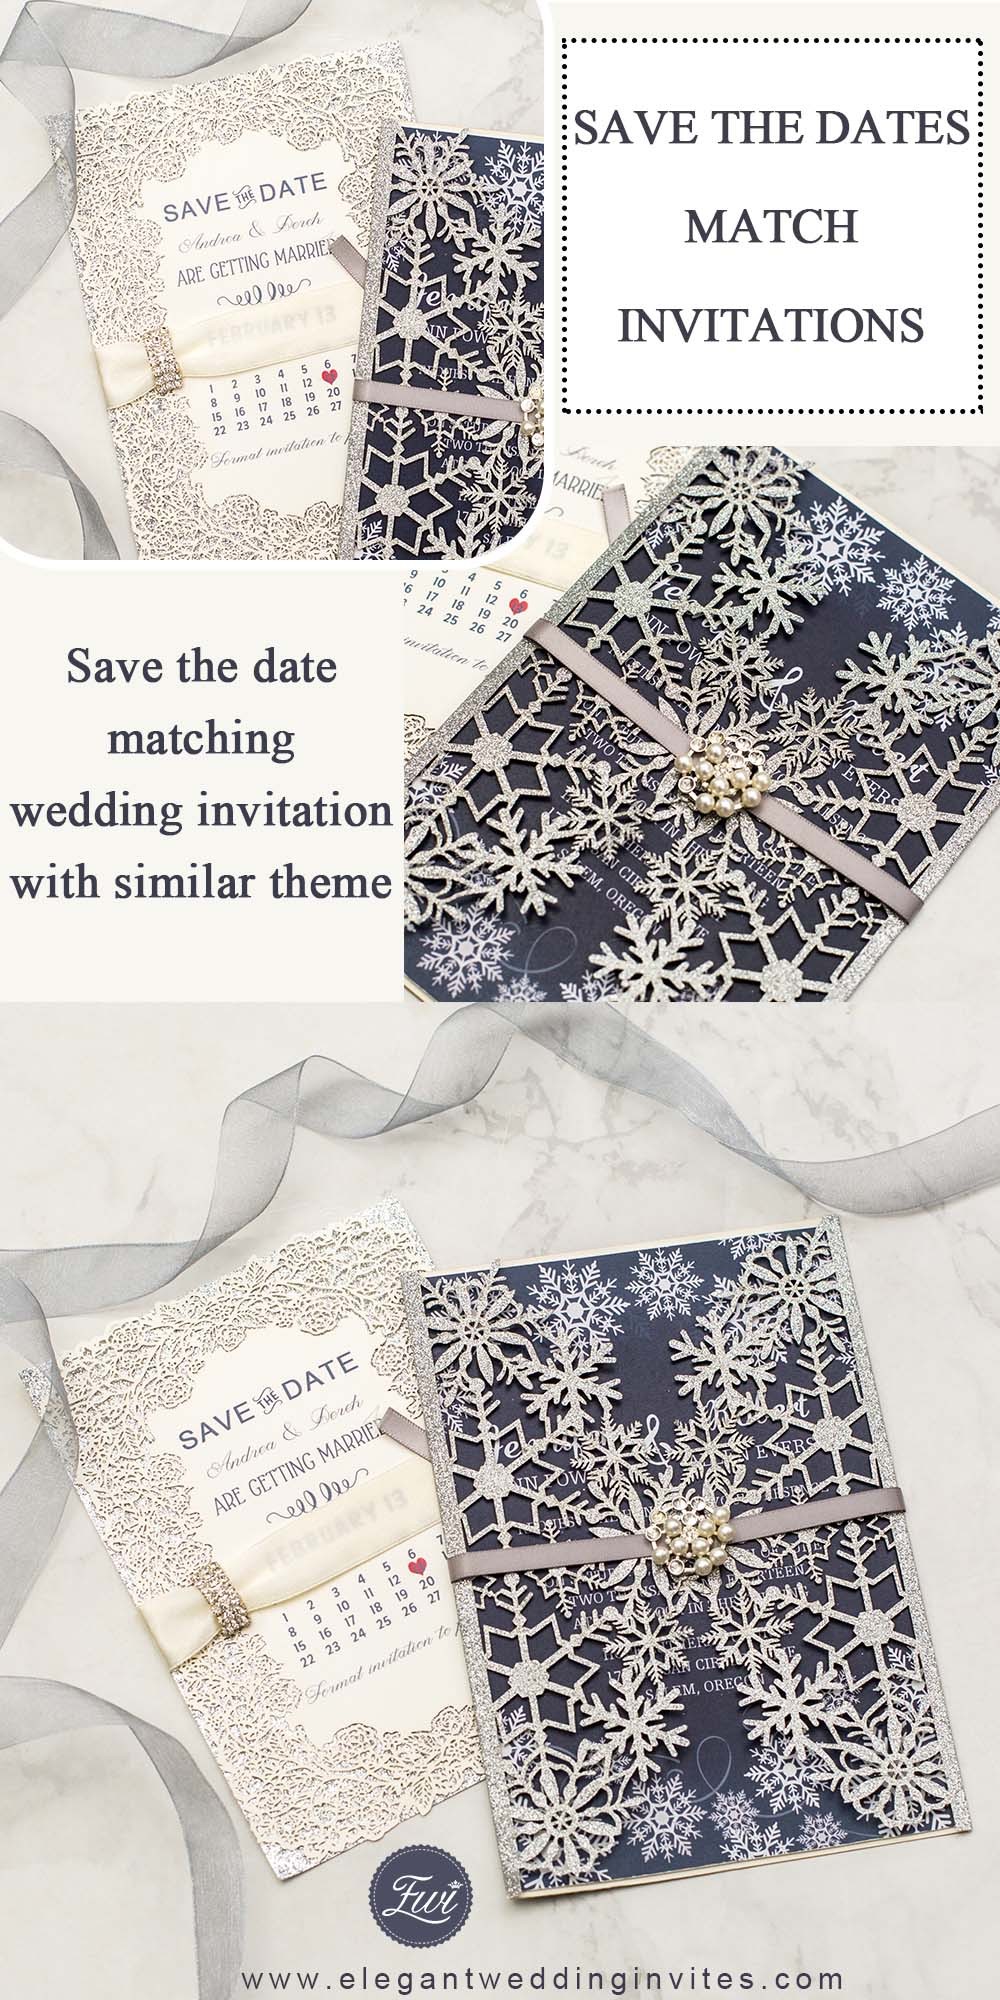 a perfect match of save the date cards and wedding invitations